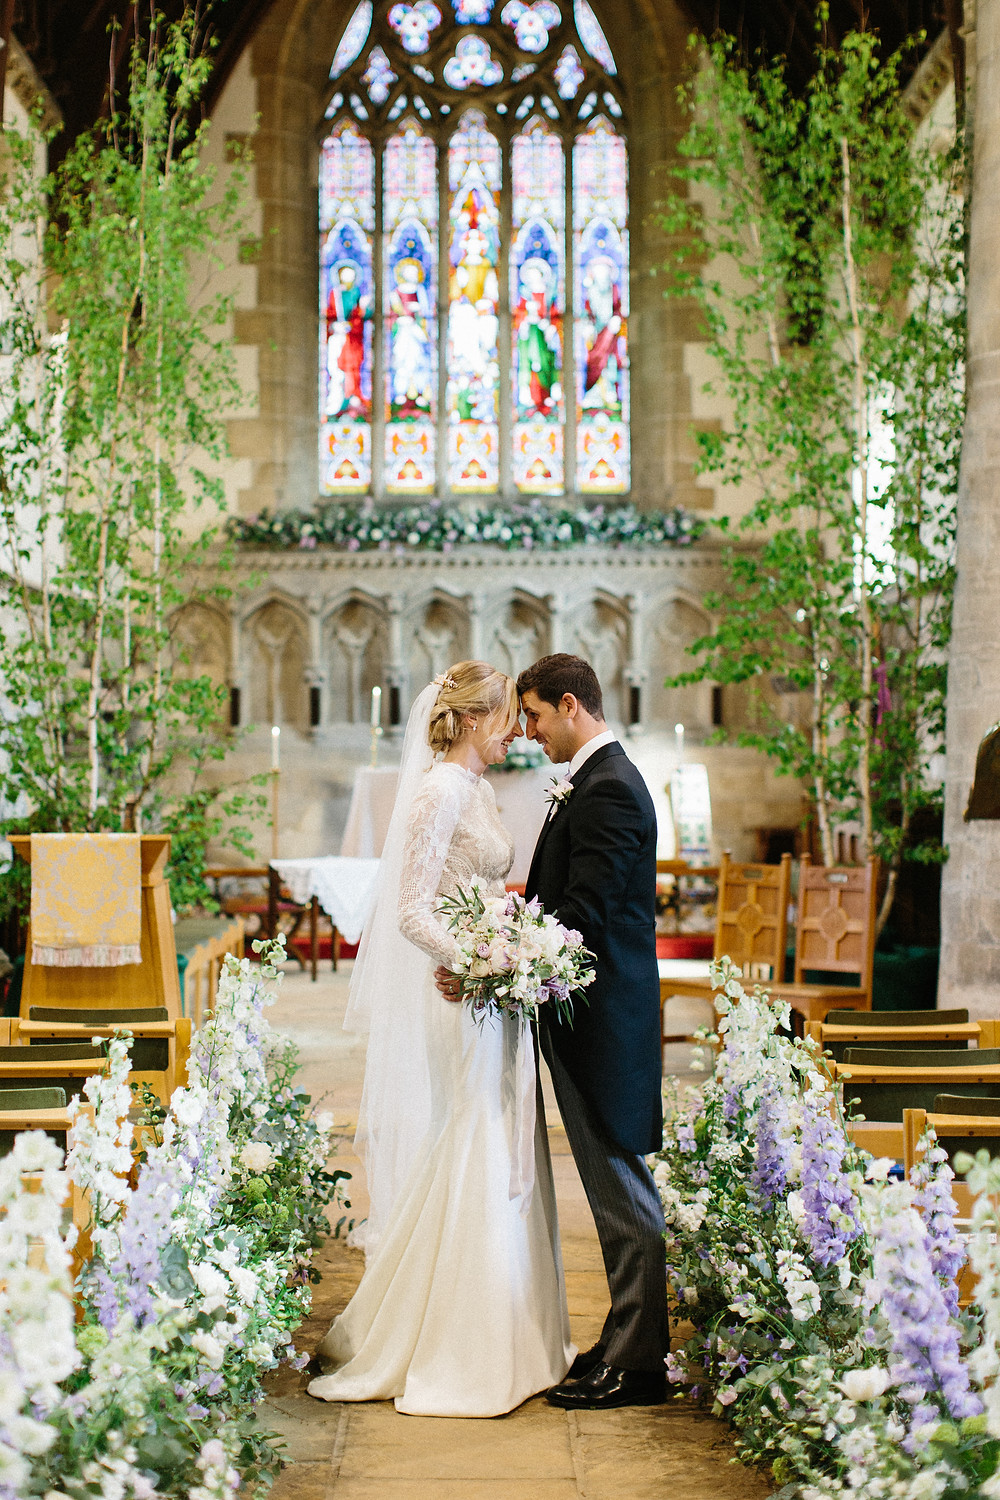 Bride and groom in a church surrounded by flowers